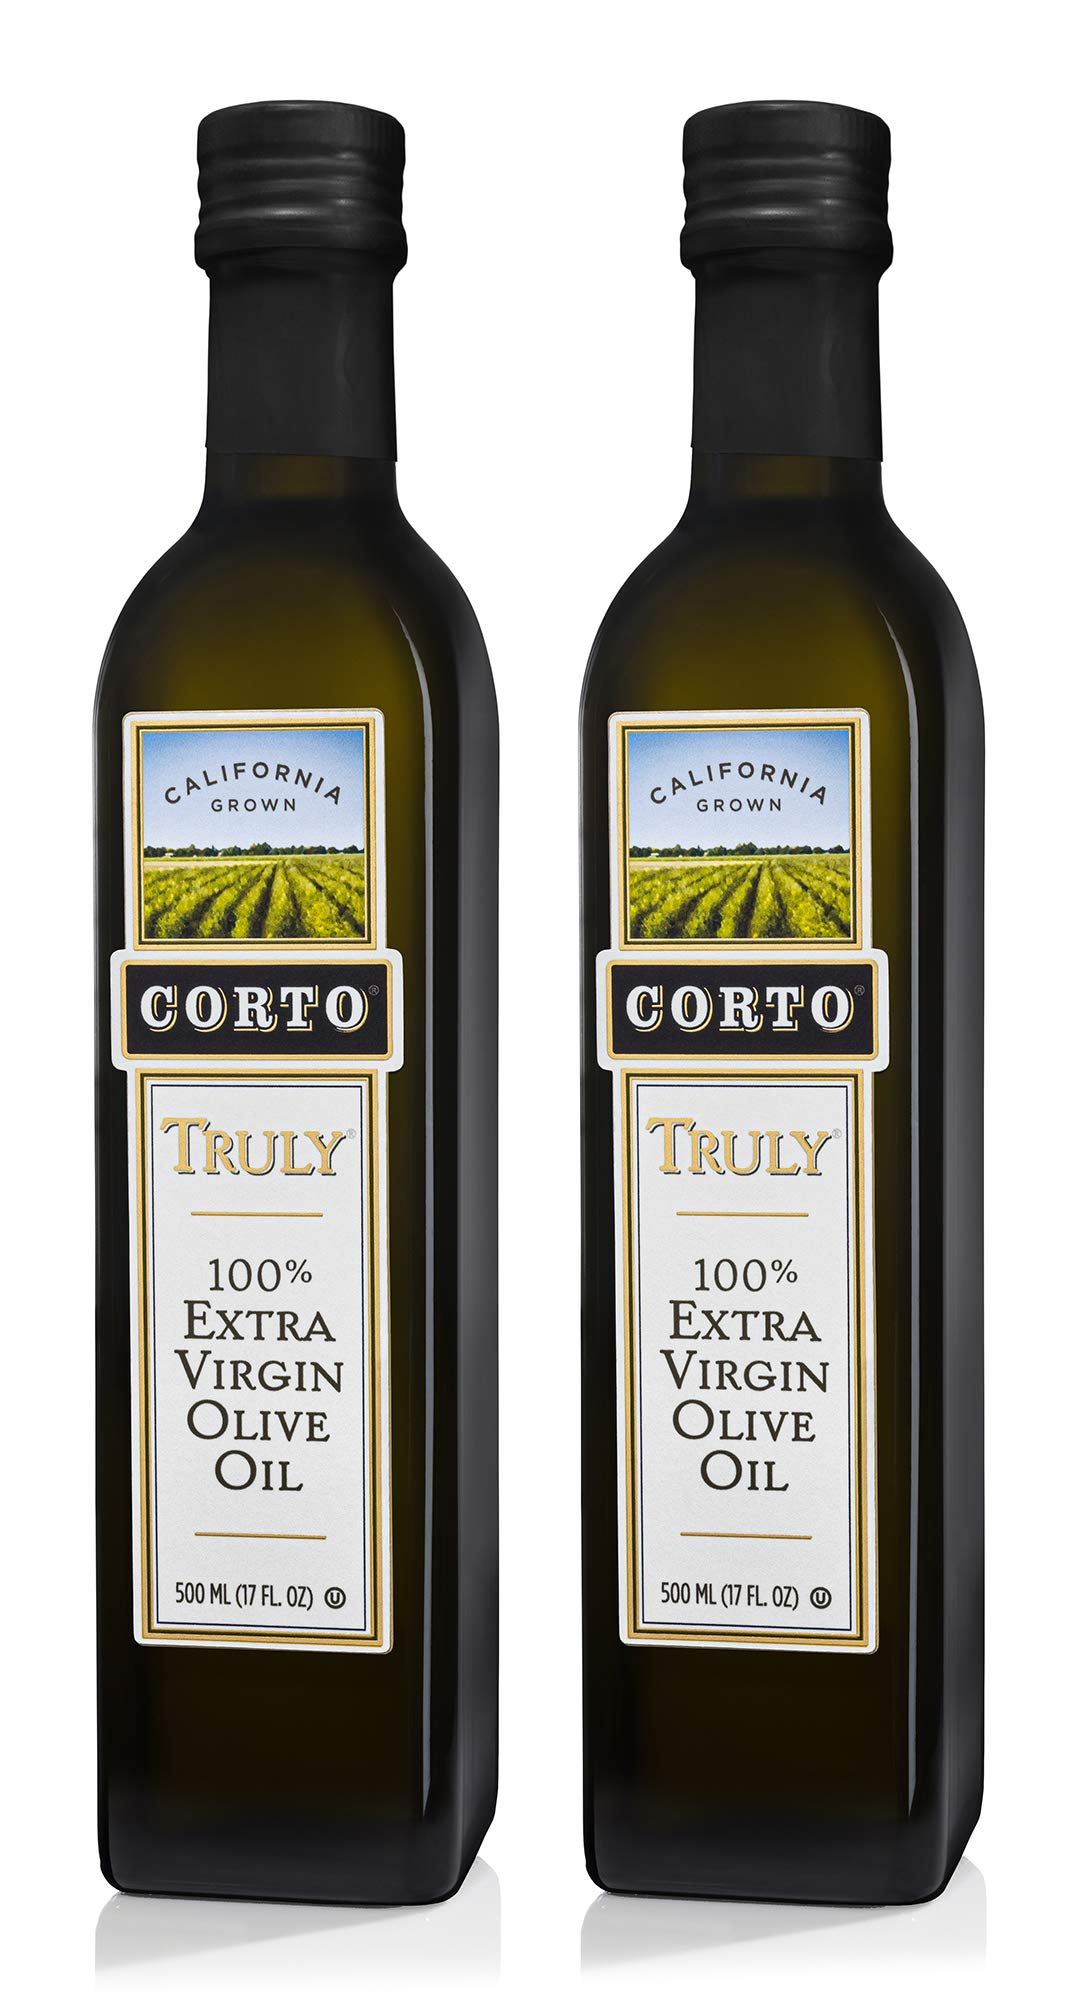 Corto TRULY® | 100% Extra Virgin Olive Oil | Floral Notes | Cold Extracted in State-of-the-Art Mill | Straight from Official Corto Olive Groves & Oil Producer | 500 mL | Twin Pack (2)